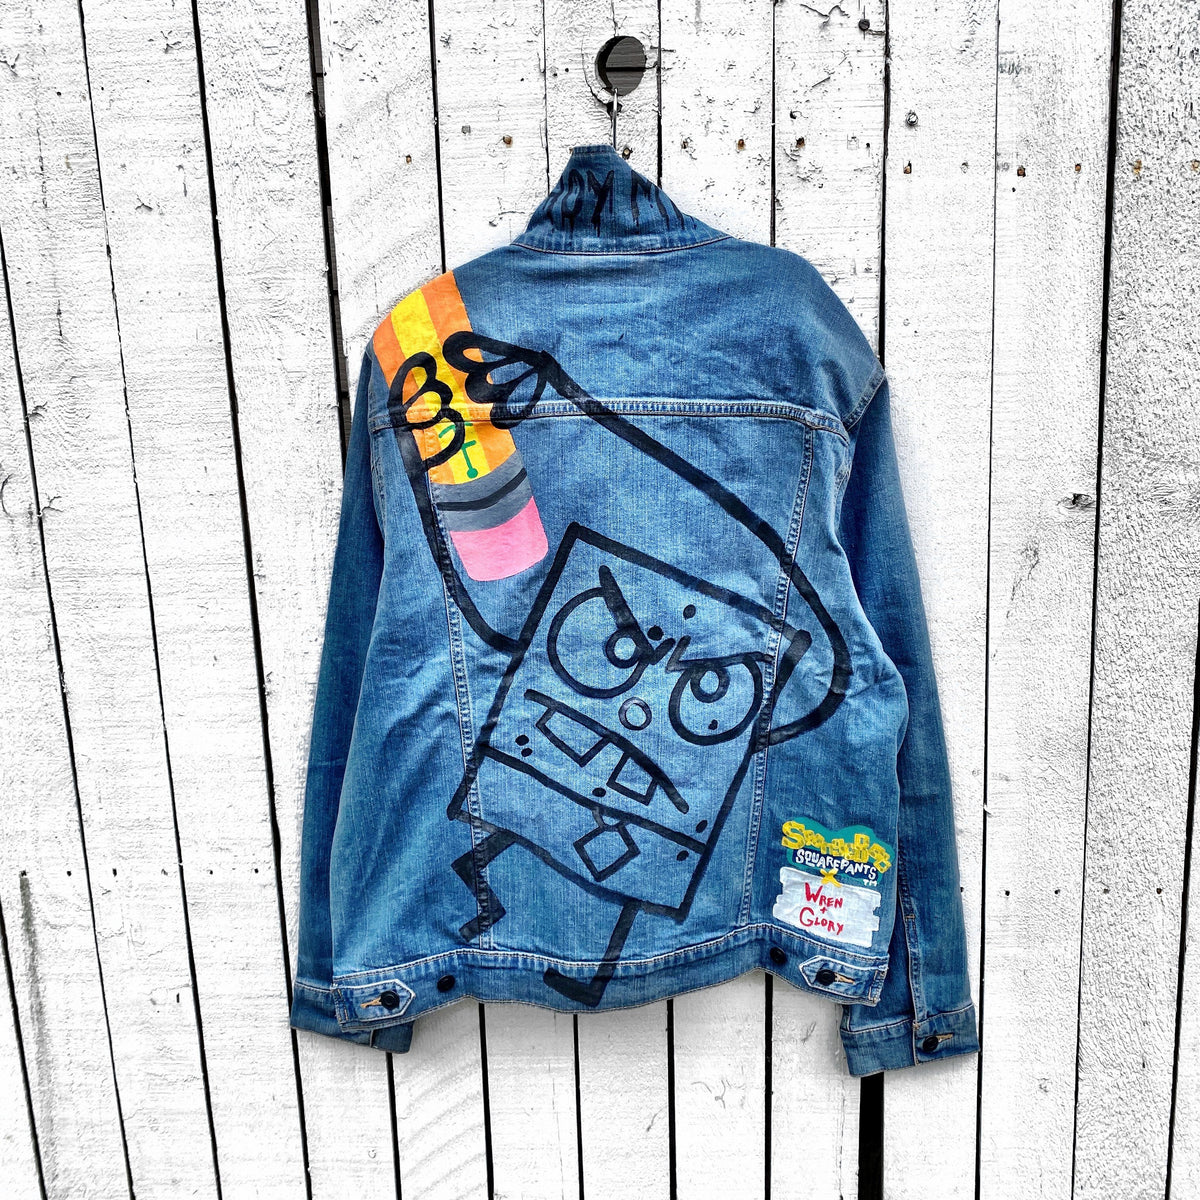 WG x SpongeBob SquarePants 'DoodleBob IS BACK' DENIM JACKET